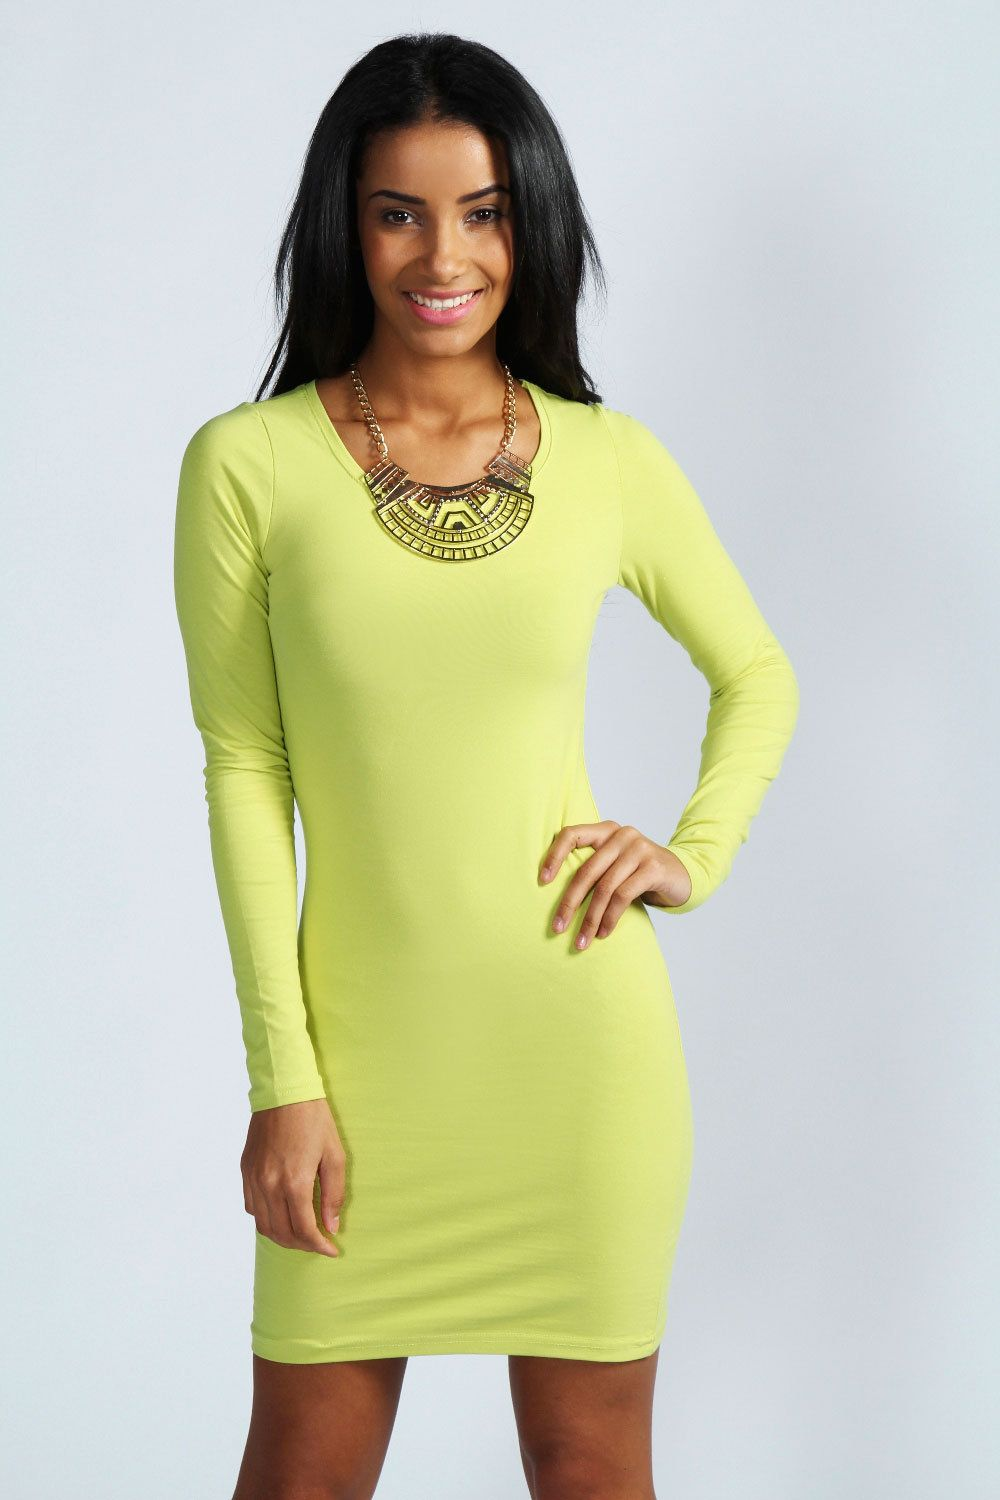 Yellow Bodycon Dresses Long Sleeve | Bodycon Dresses | Pinterest ...